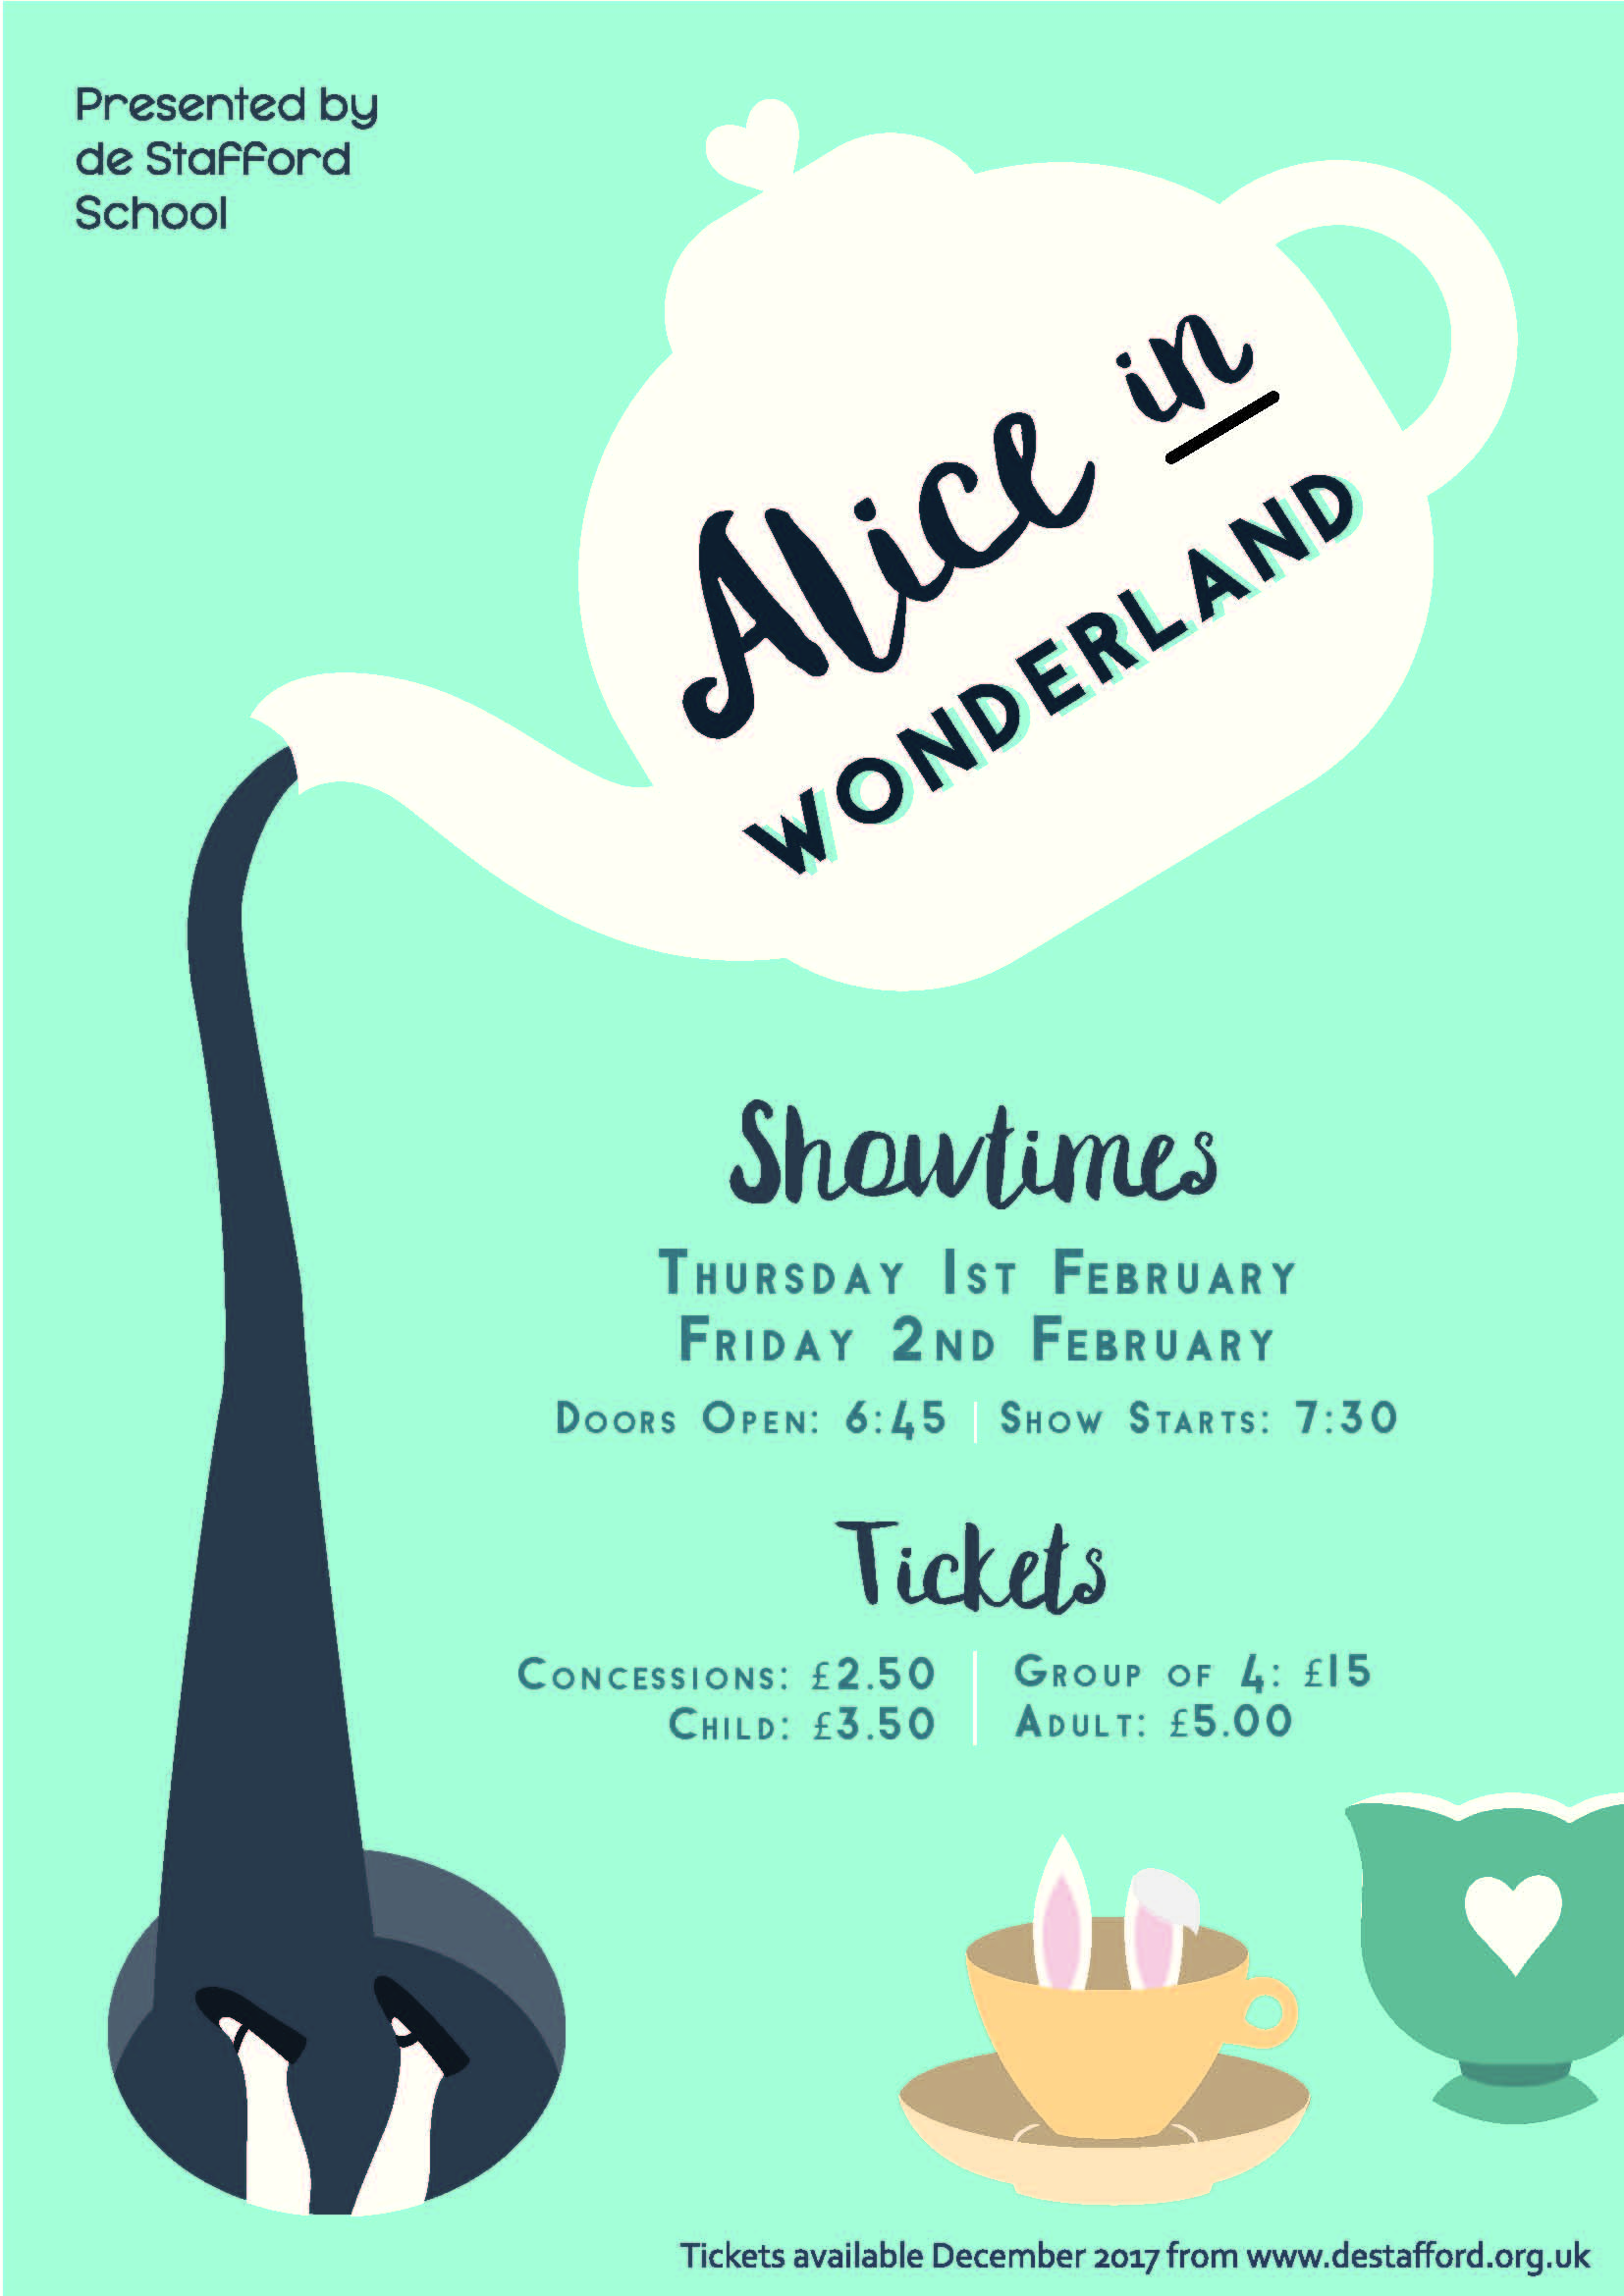 Alice poster shows Times